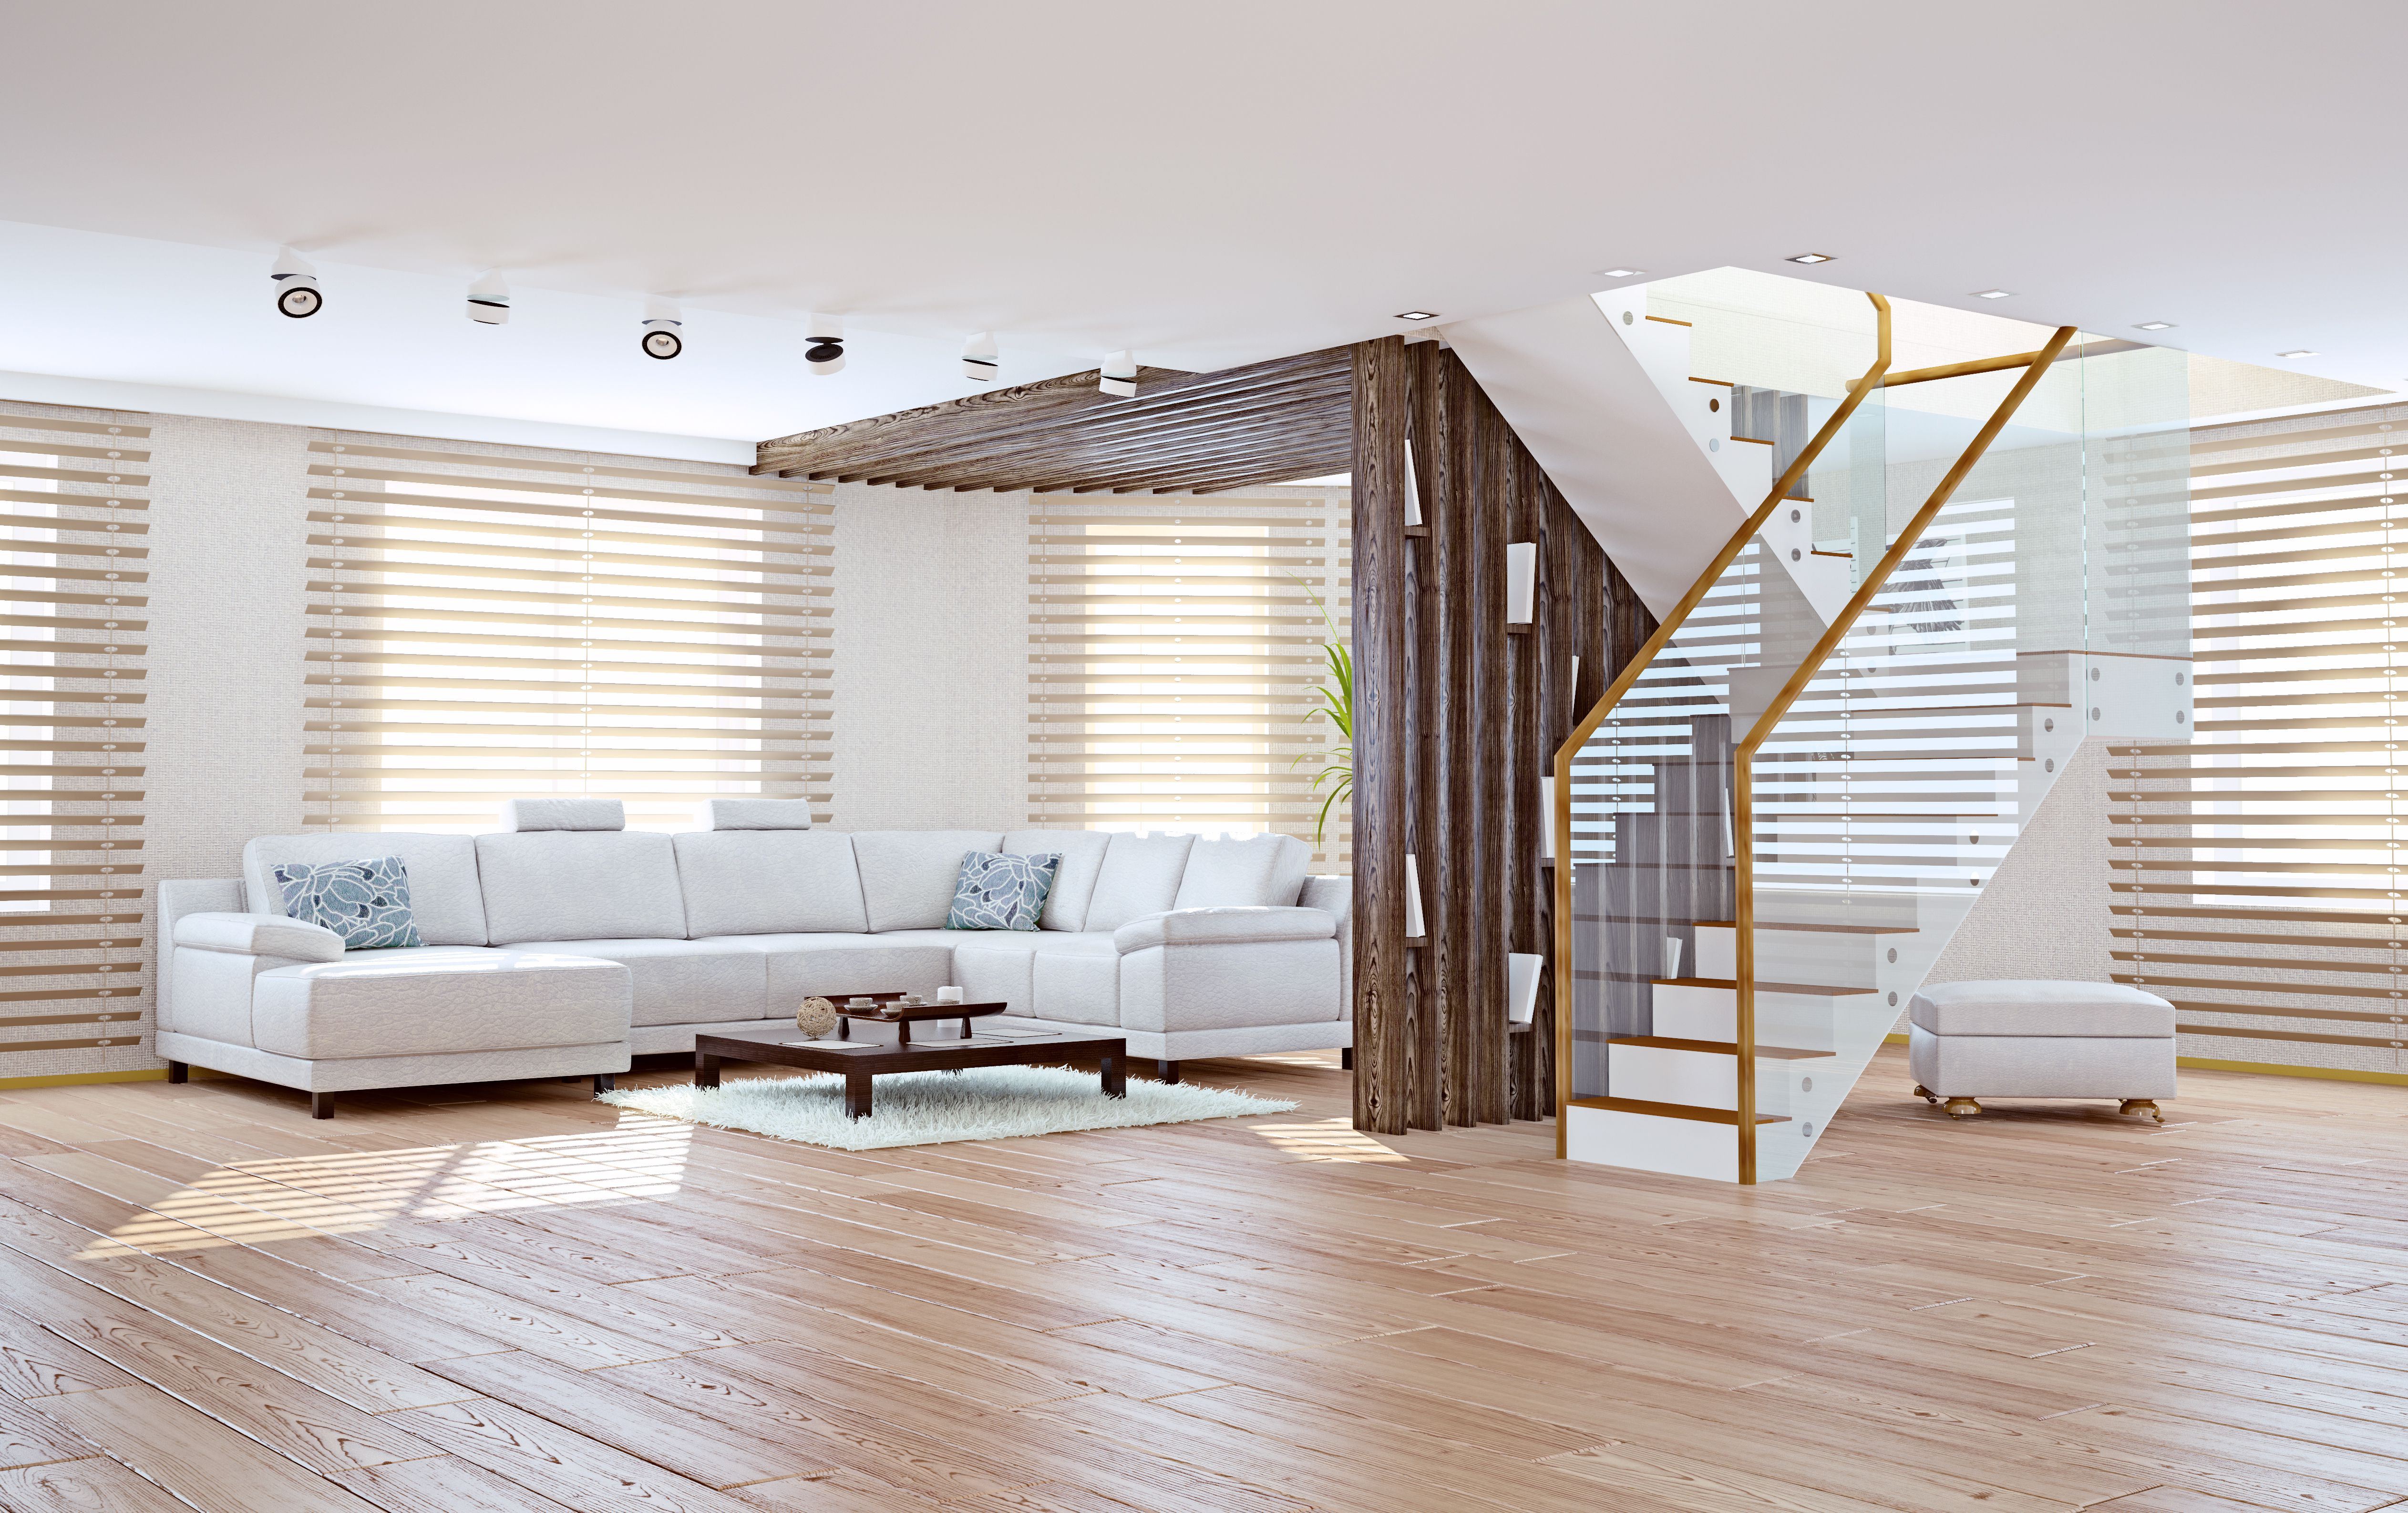 24 Perfect Prefinished solid Hardwood Flooring Sale 2021 free download prefinished solid hardwood flooring sale of wide plank flooring myths and advice for basics of true wide plank flooring